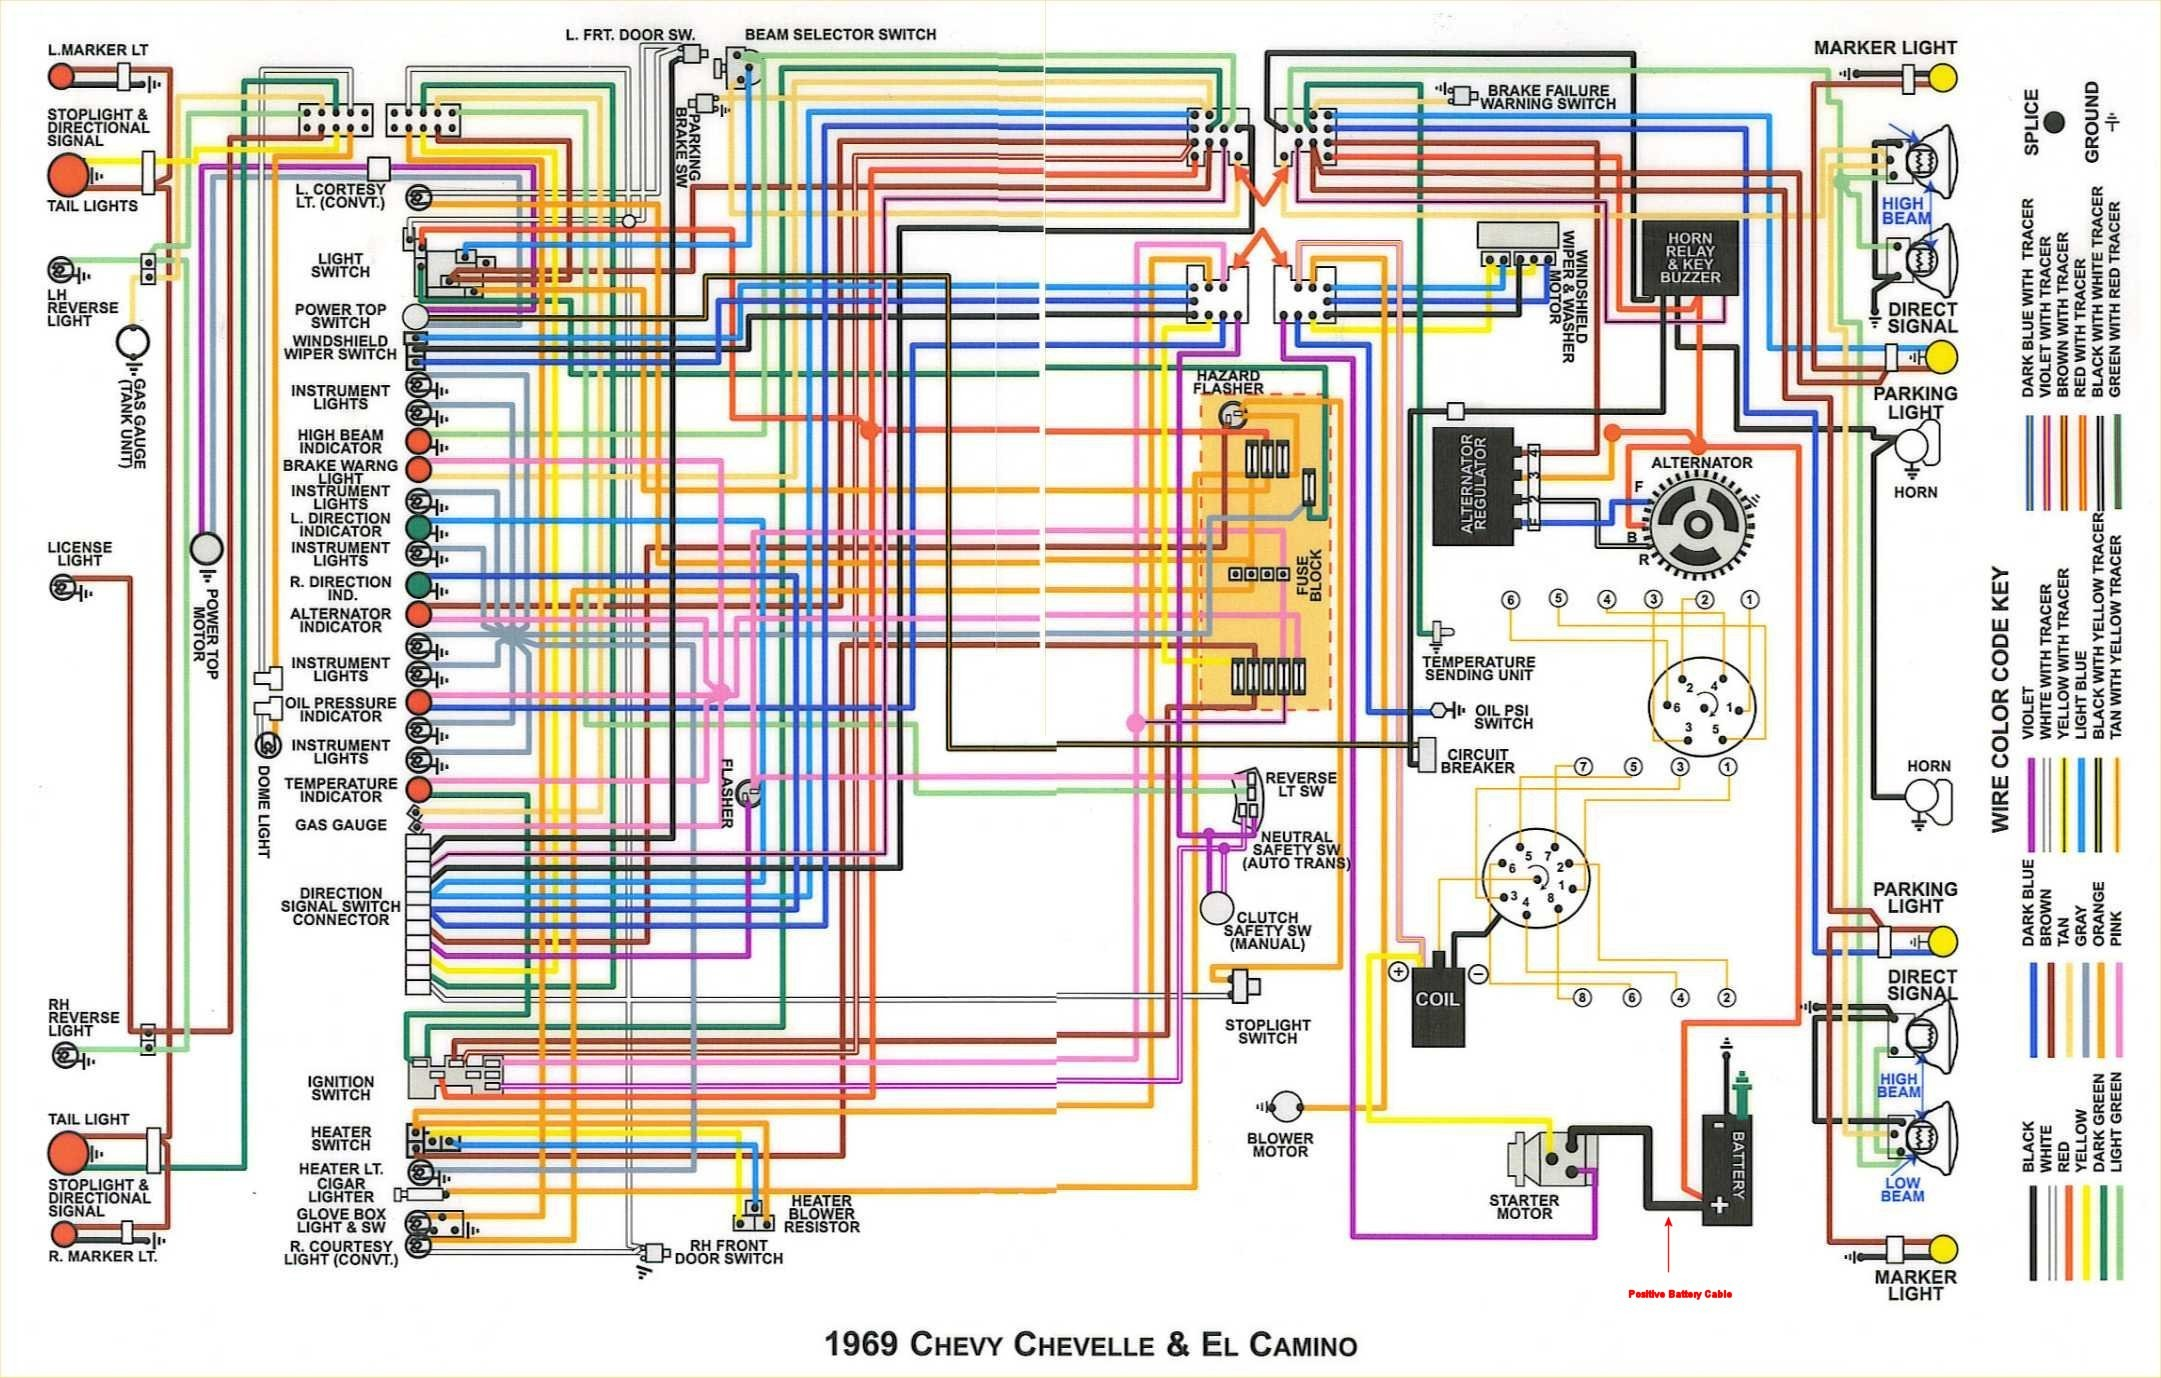 1967 chevelle wiring harness wiring diagram rh w50 lottehaakt nl